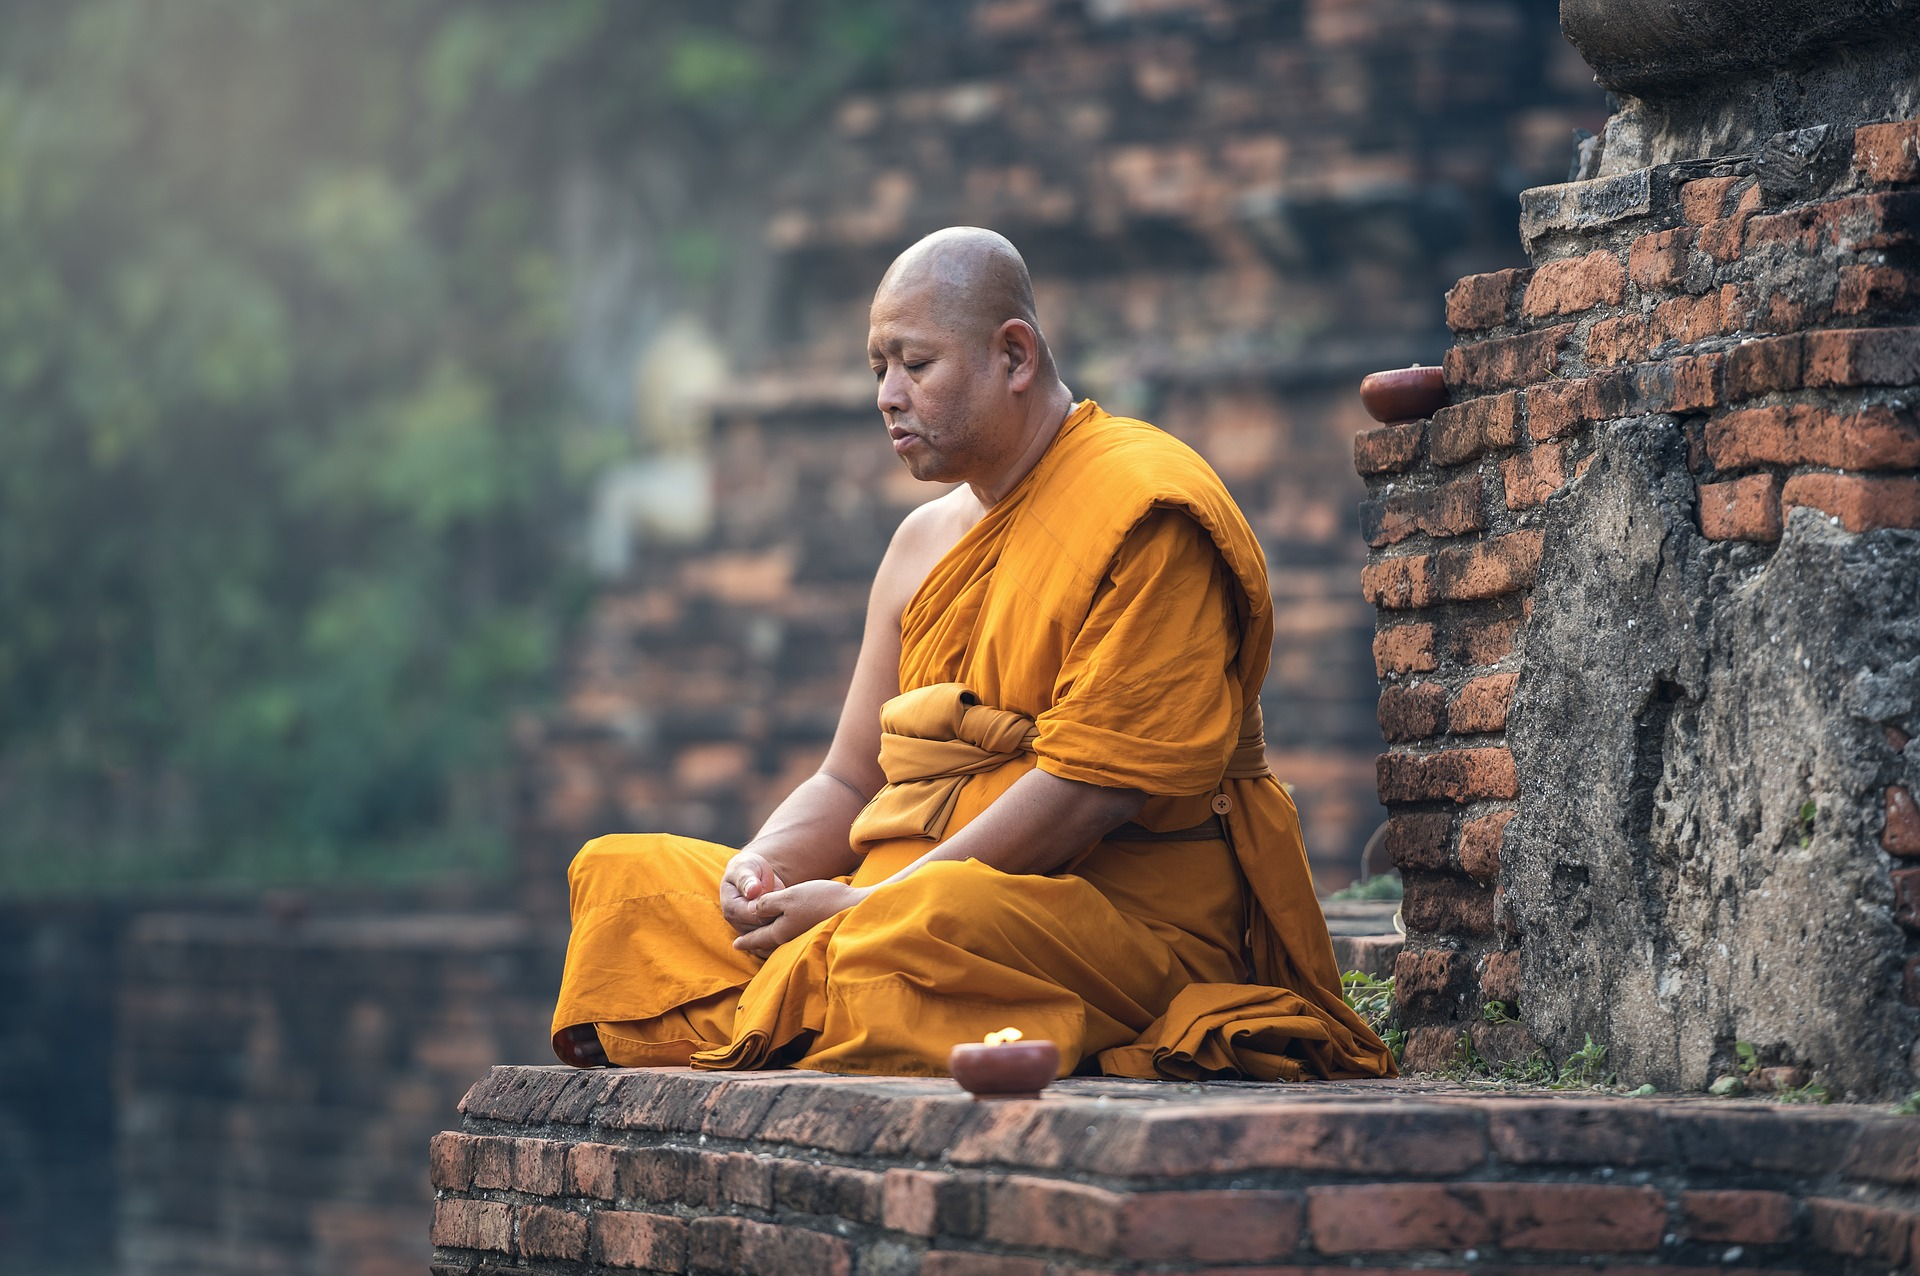 Mindfulness Practice is nothing new